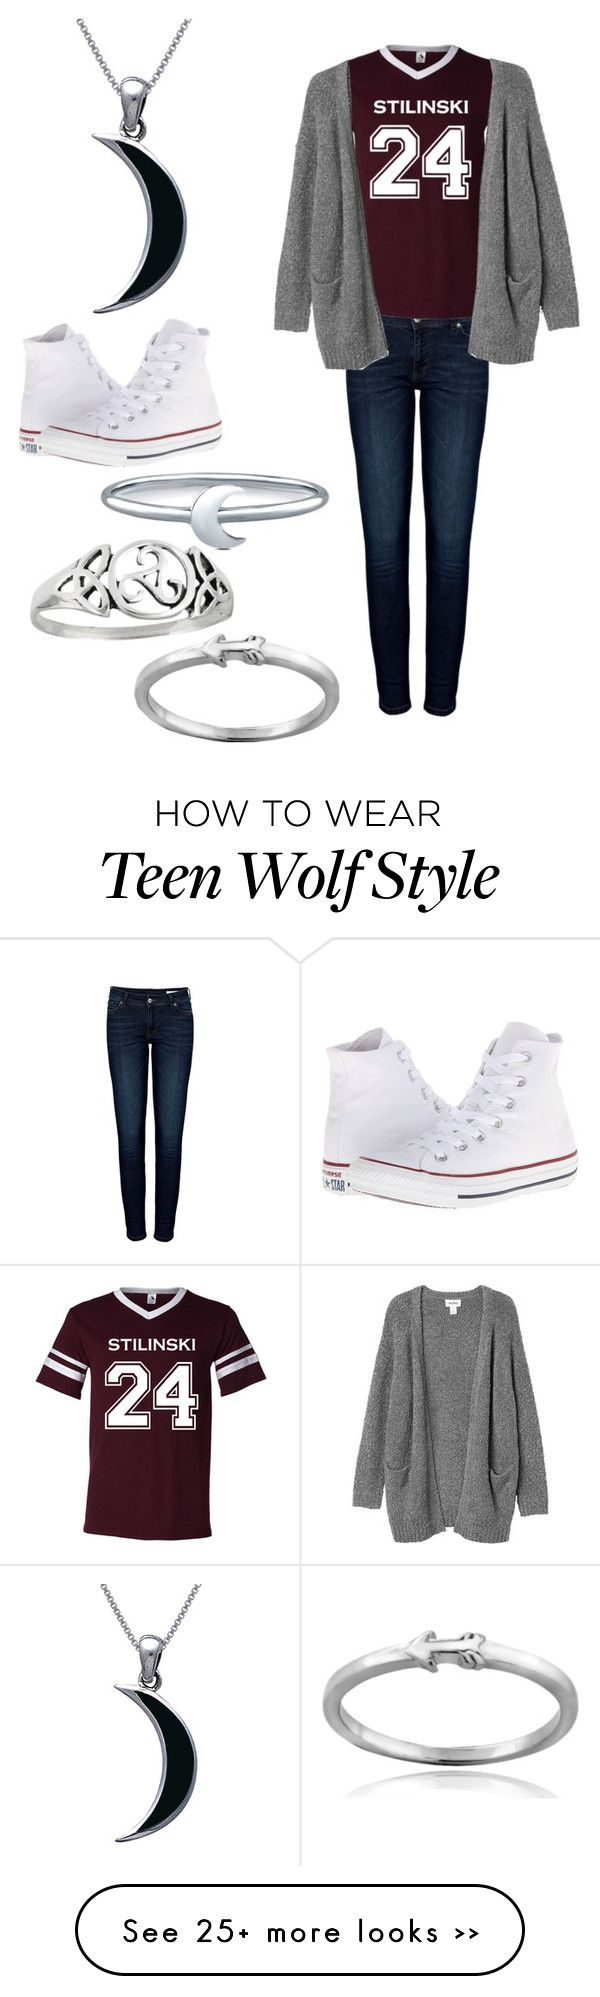 """Teen Wolf"" by mashtonsturbate on Polyvore"